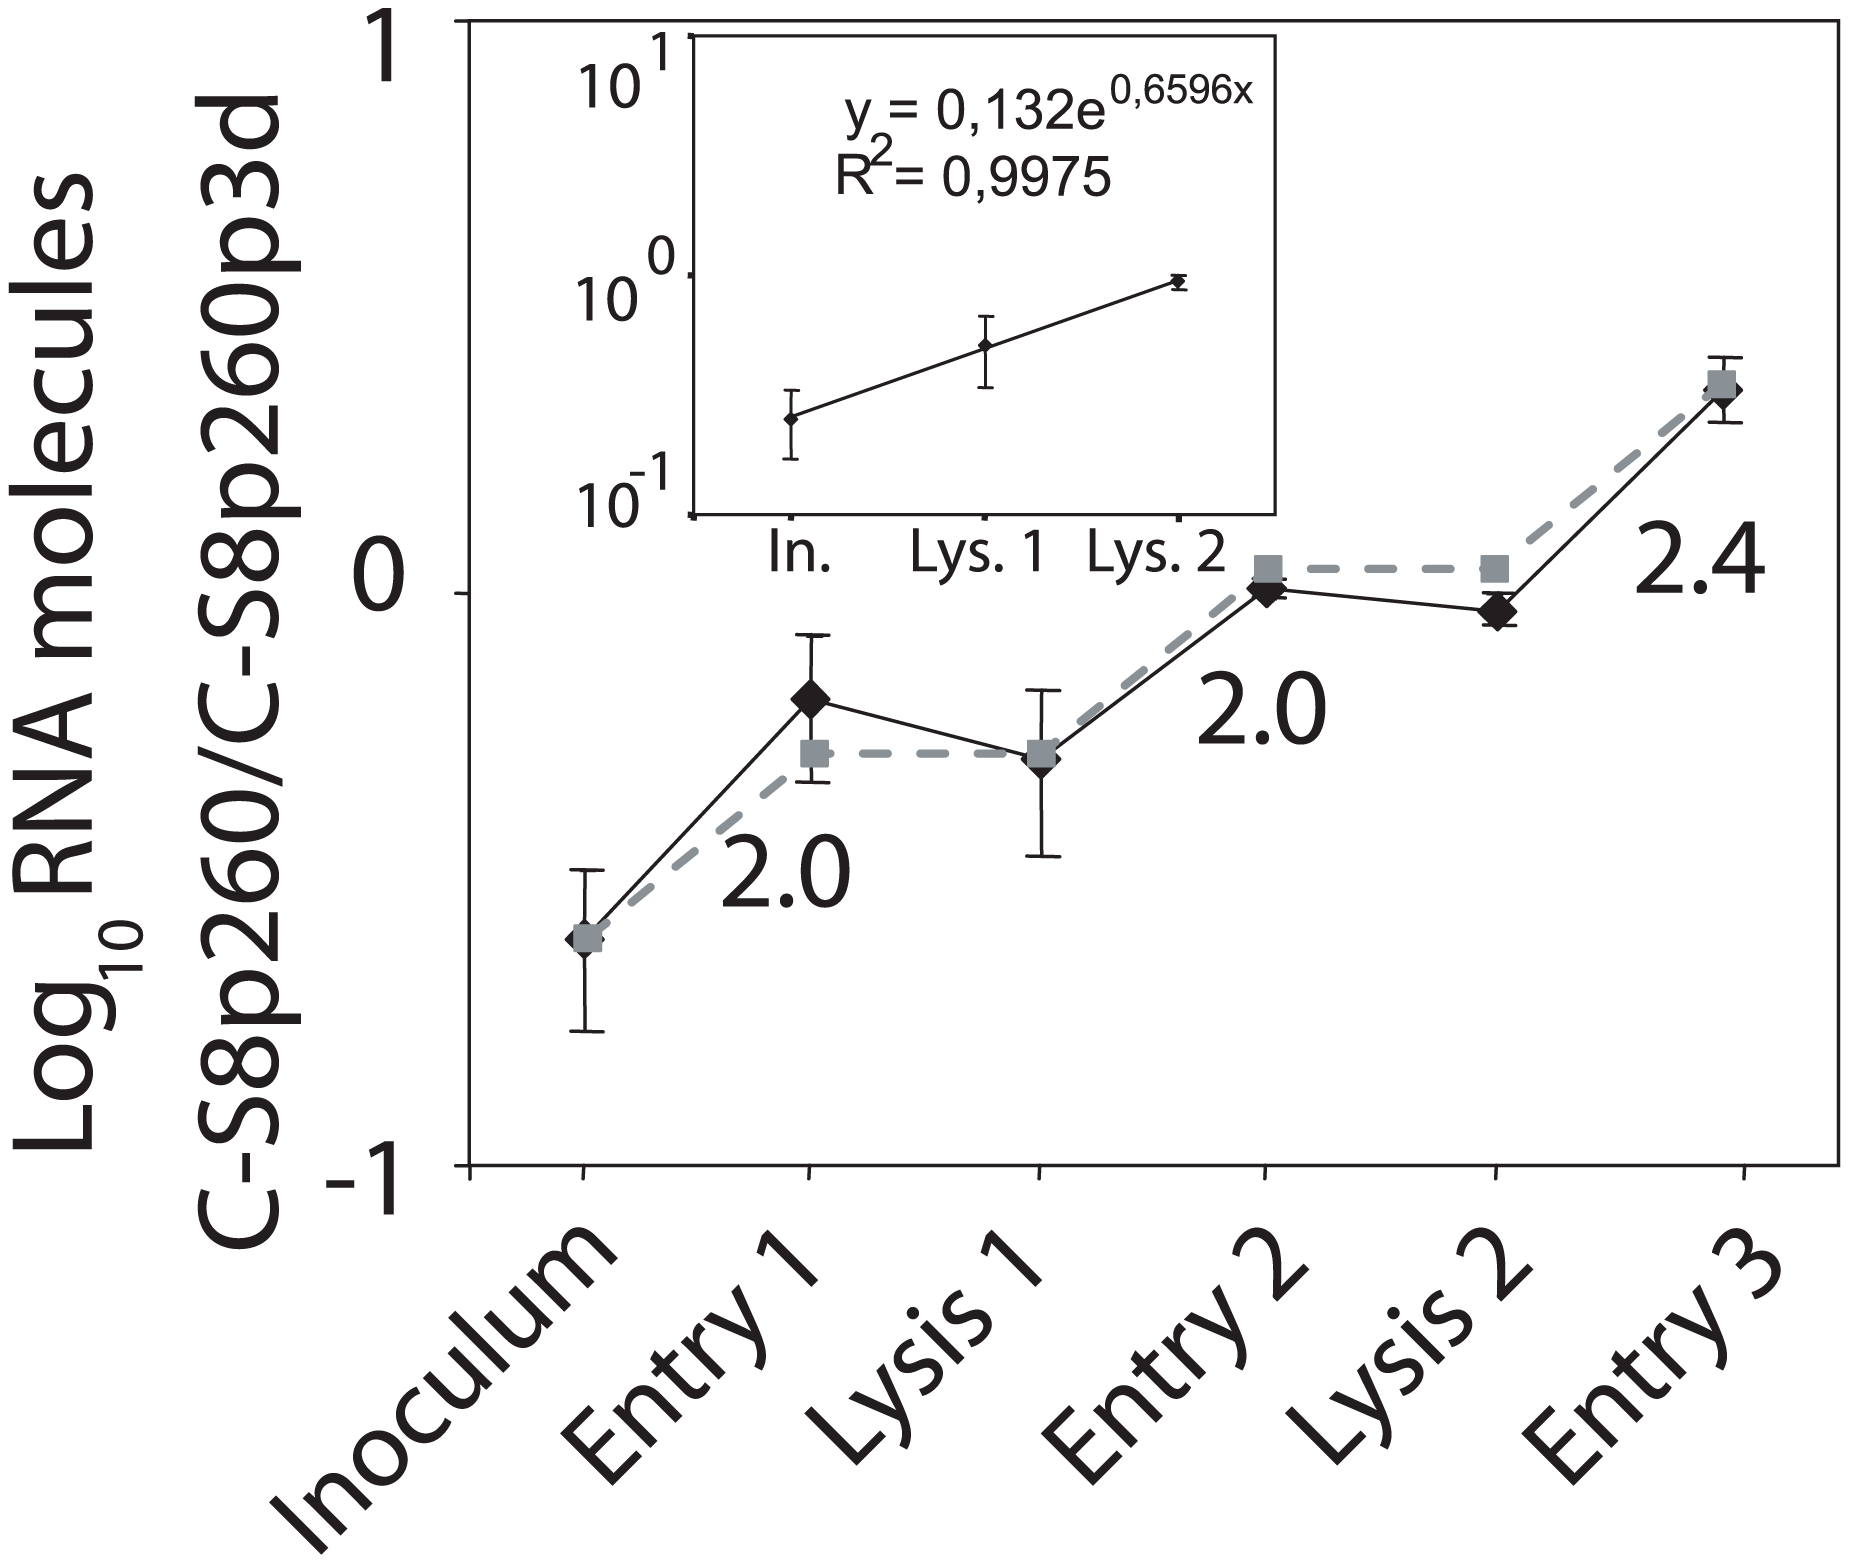 Dissection of the competition between C-S8p260 and C-S8p260p3d throughout sequential infectious cycles.